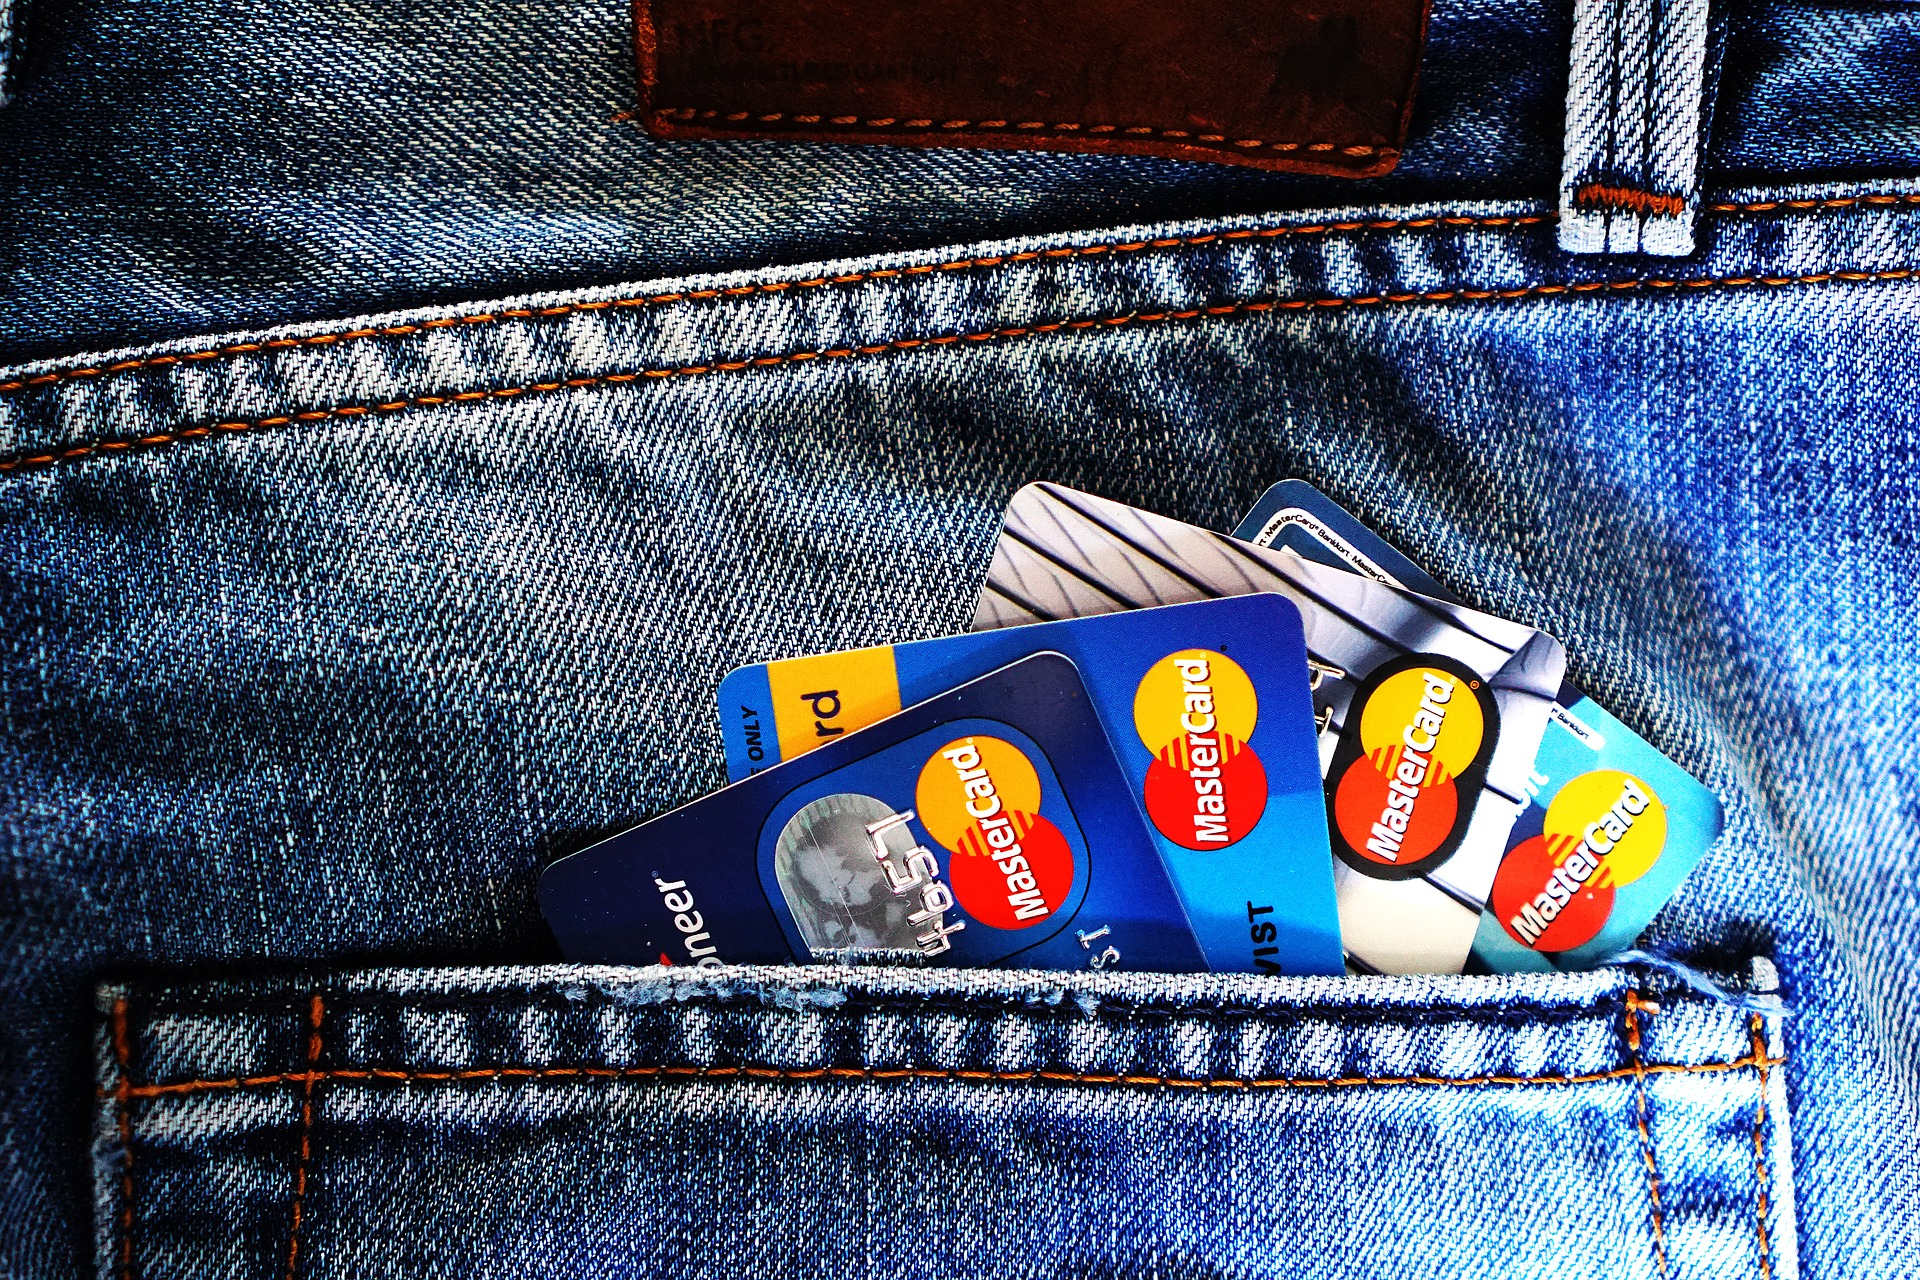 Denim jean pocket holding four credit cards